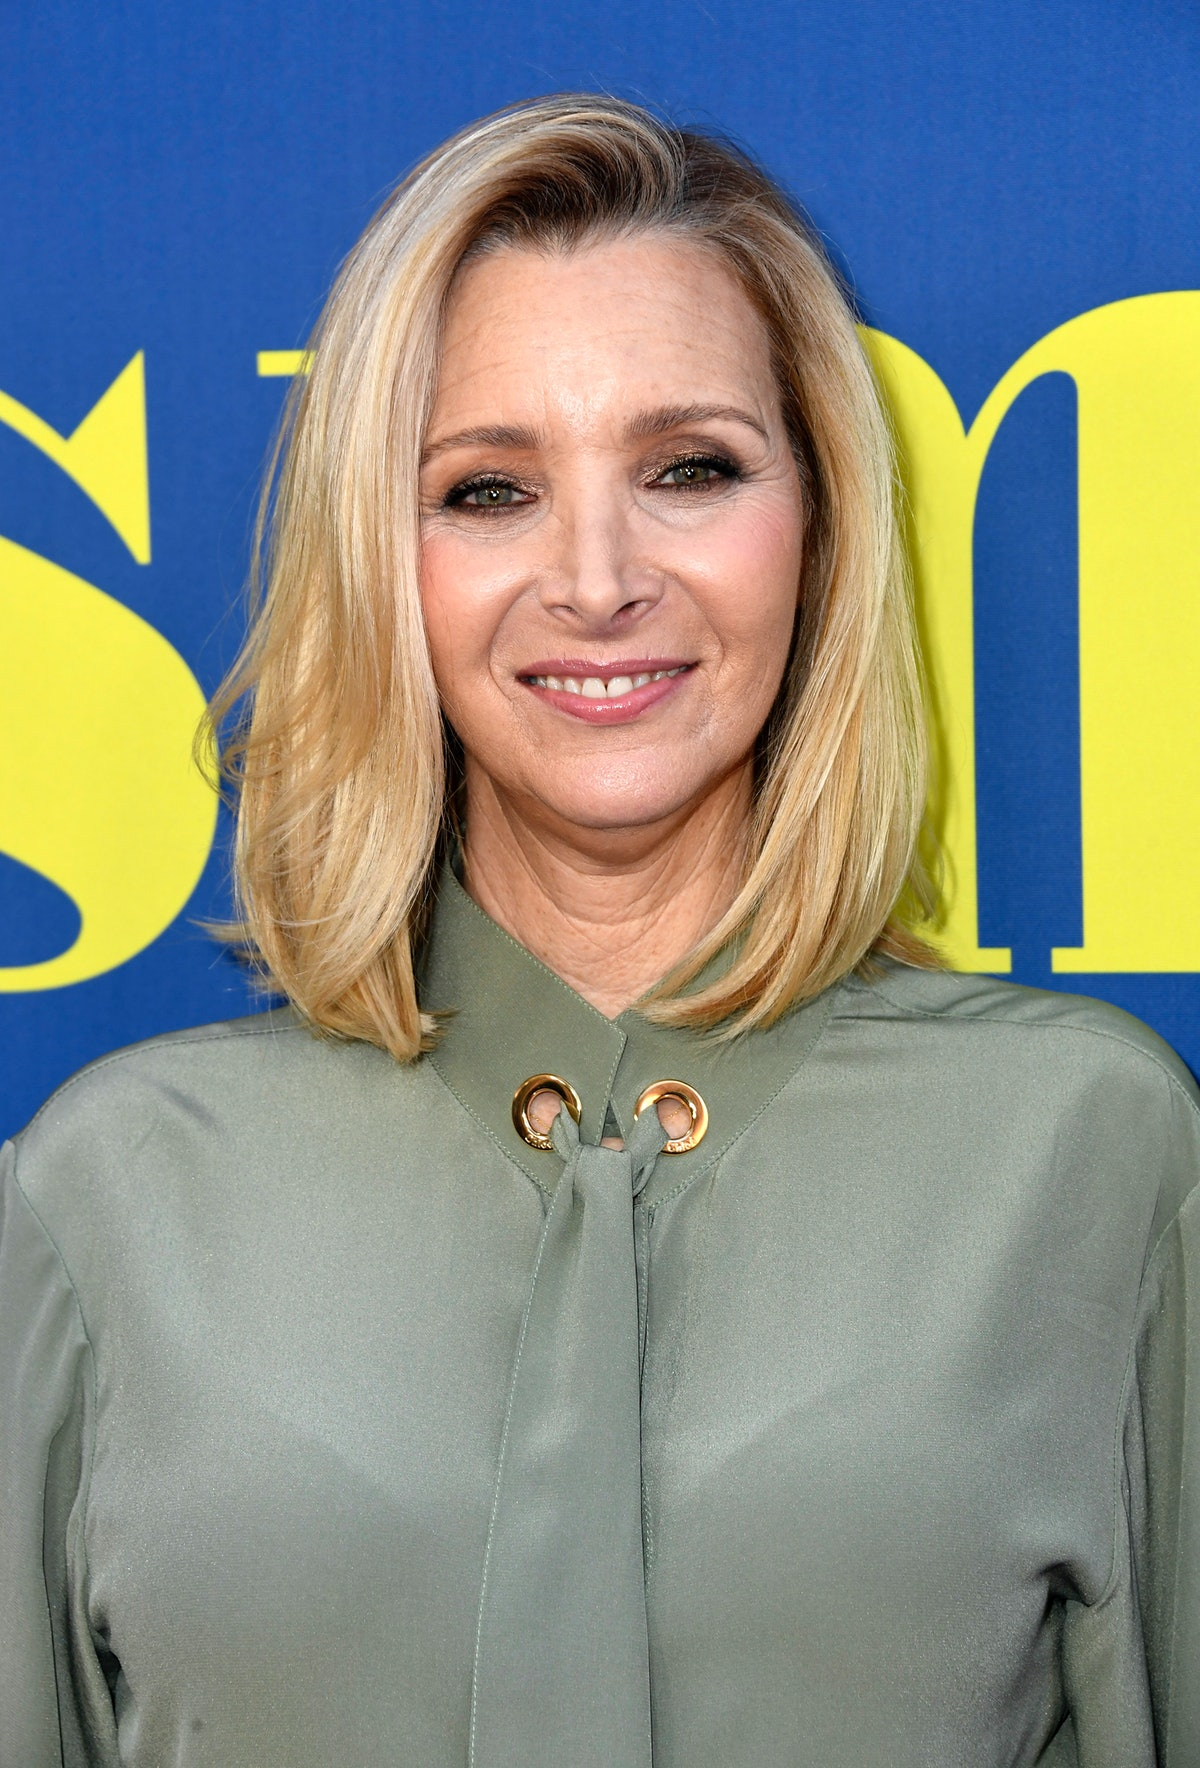 Lisa Kudrow Opened Up About Body Image Struggles While Filming 'Friends' & How She Feels Now